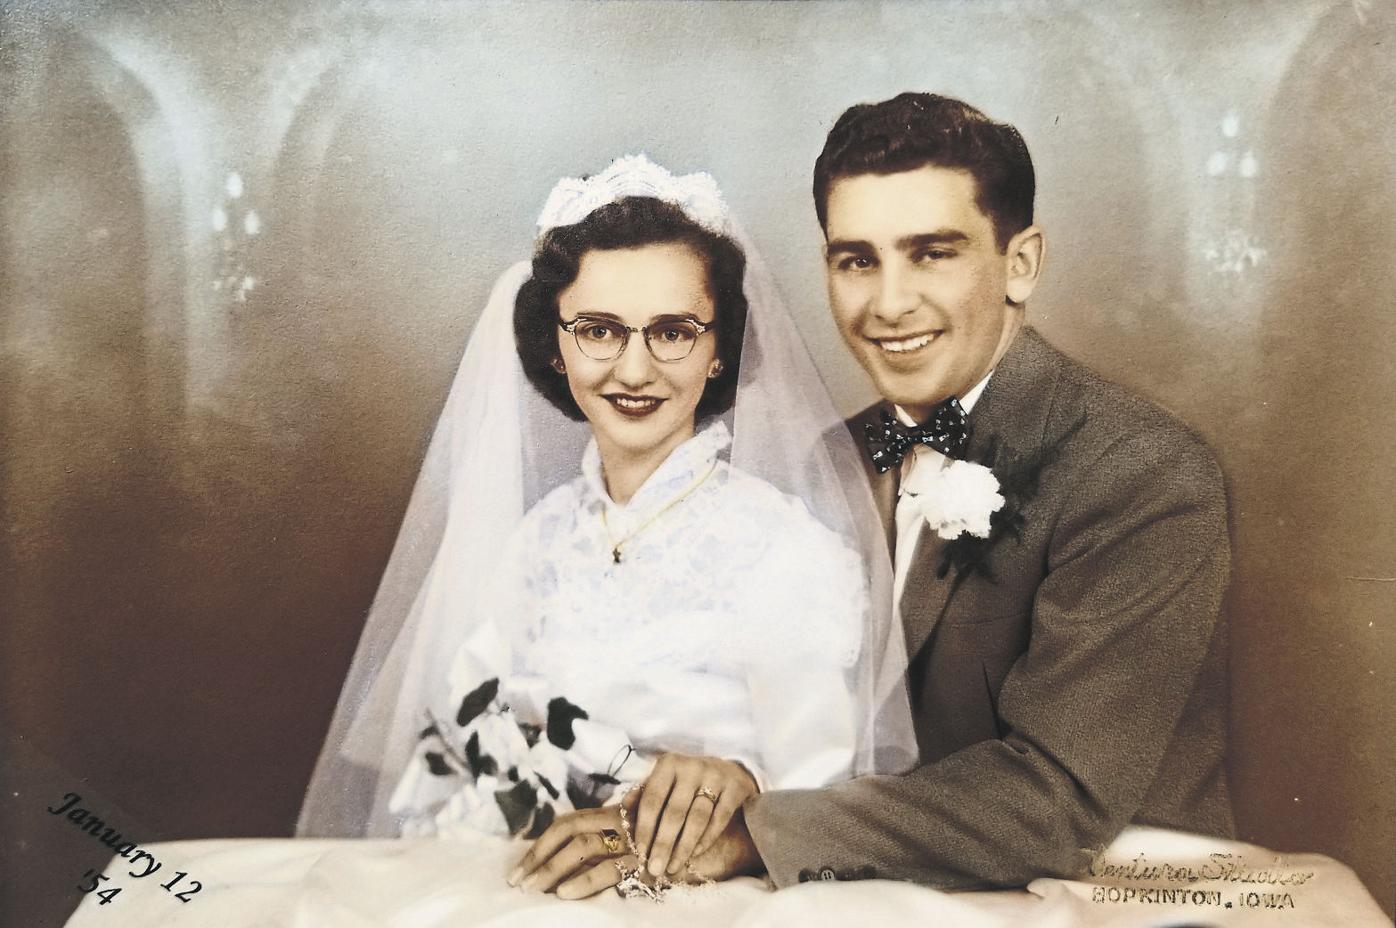 Love that lasts: Doris and Alvin Hermsen